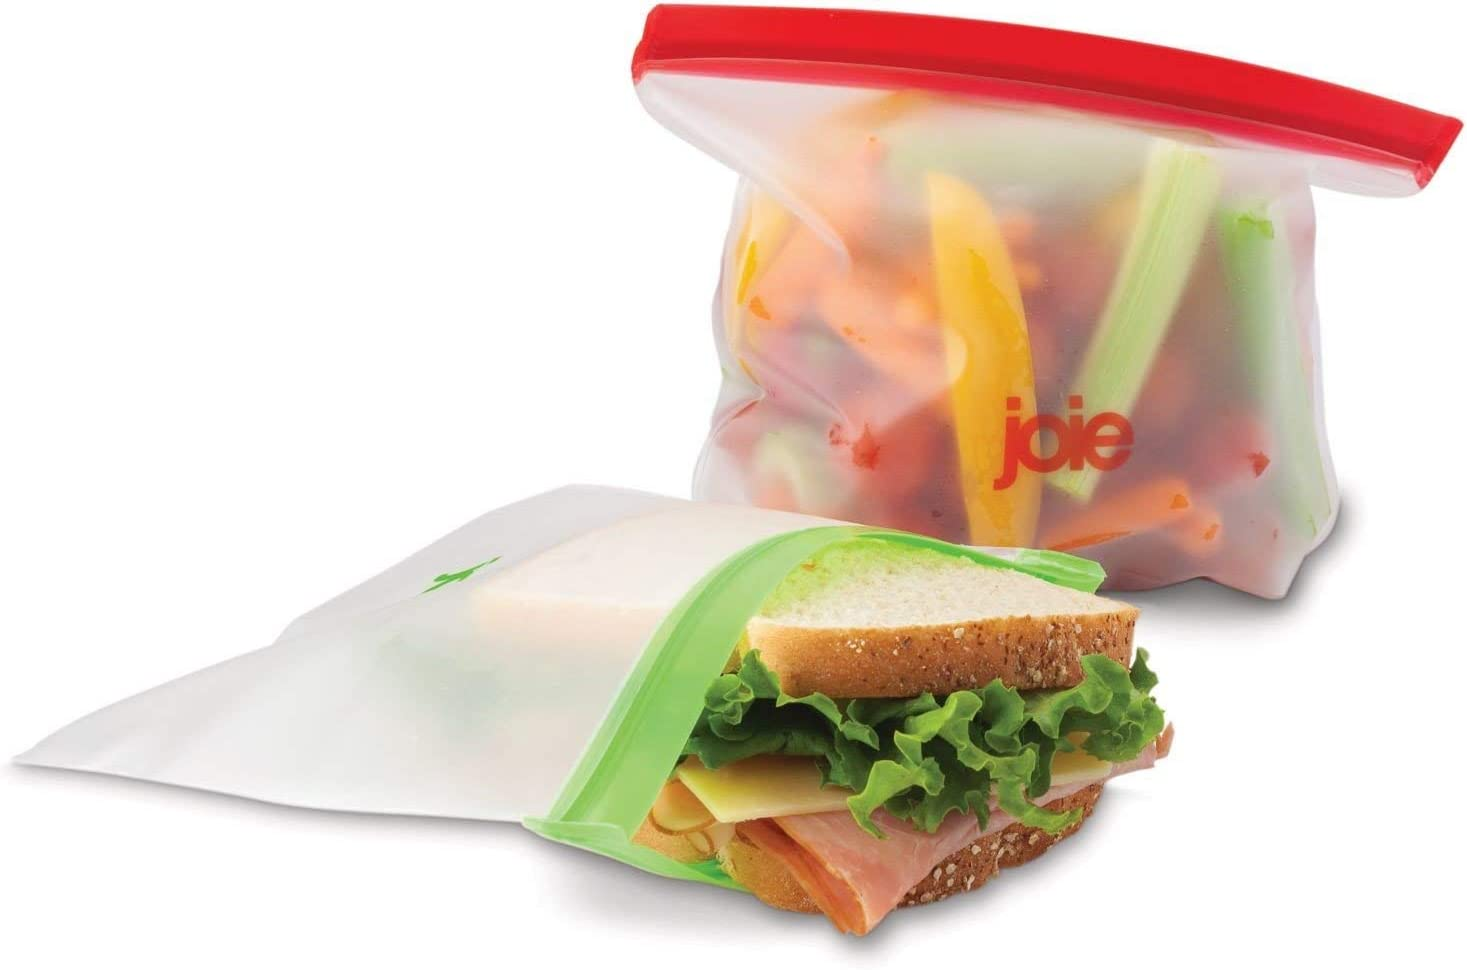 """Joie Reusable Food Storage Bags - Reusable Bags for Snacks, Sandwiches, Vegetables and More - Ziptop Containers for Sustainable Living, BPA Free, 8.75"""" x 7"""", 6 Bags"""